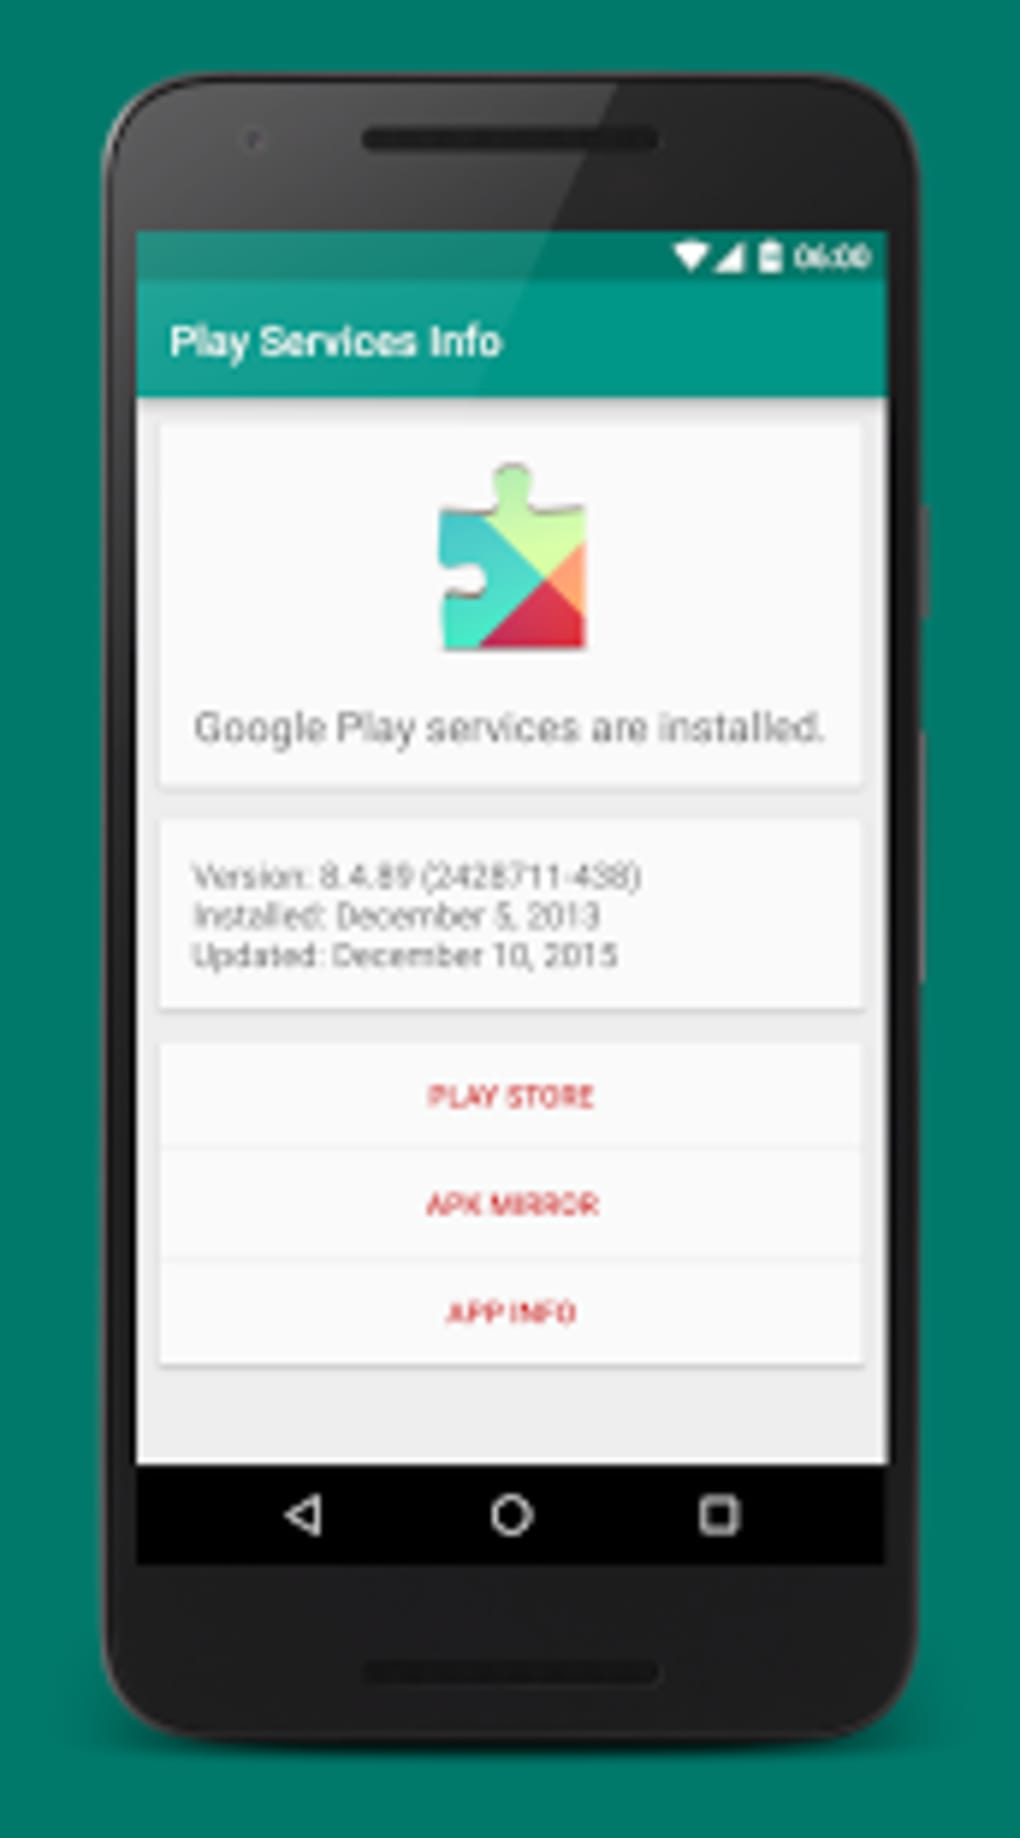 google play services are updating error android